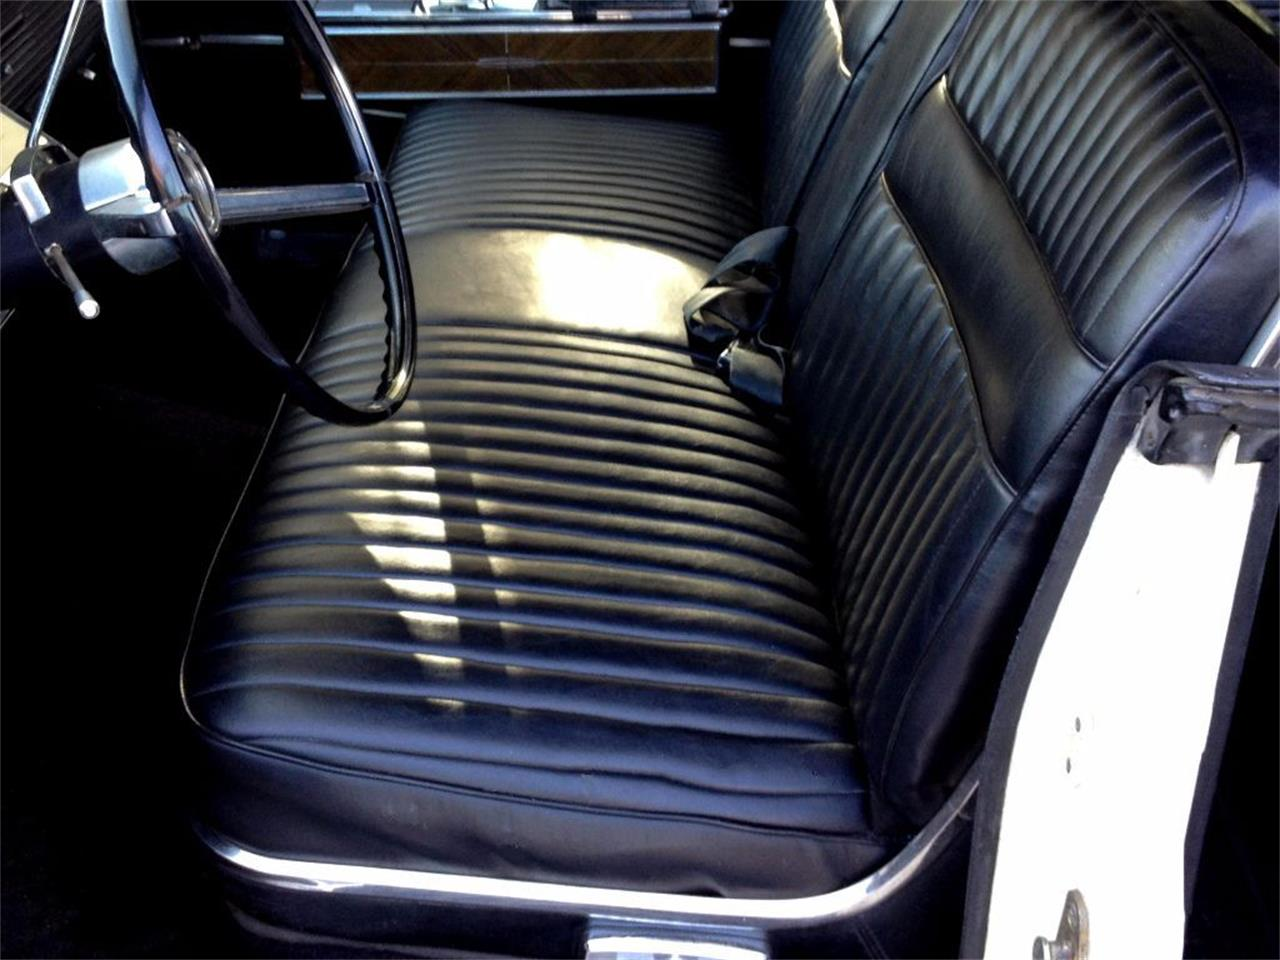 Large Picture of Classic '66 Lincoln Continental located in Stratford New Jersey - $27,990.00 - OCC2